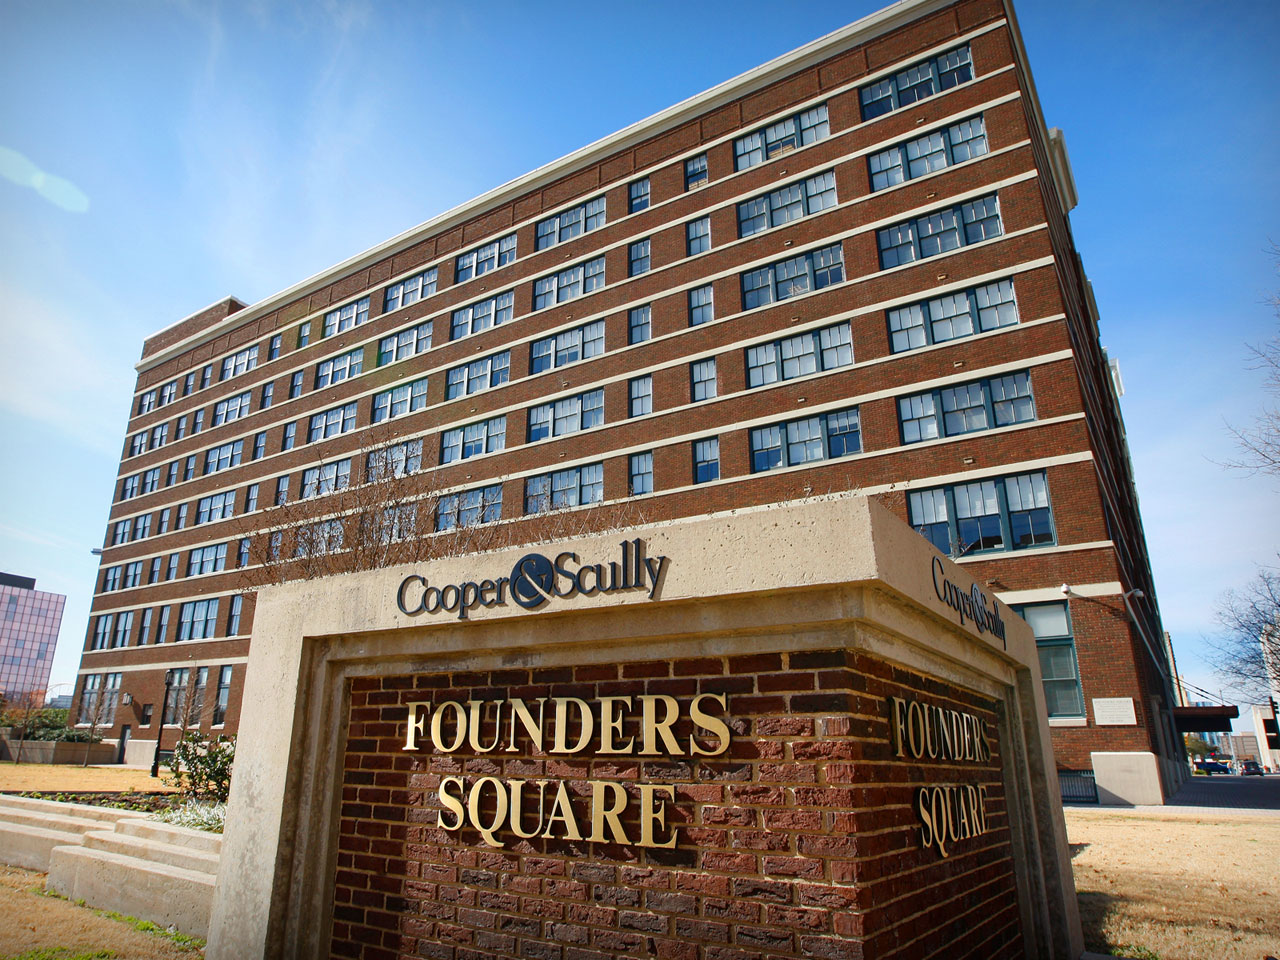 founderssquare-sign.jpg